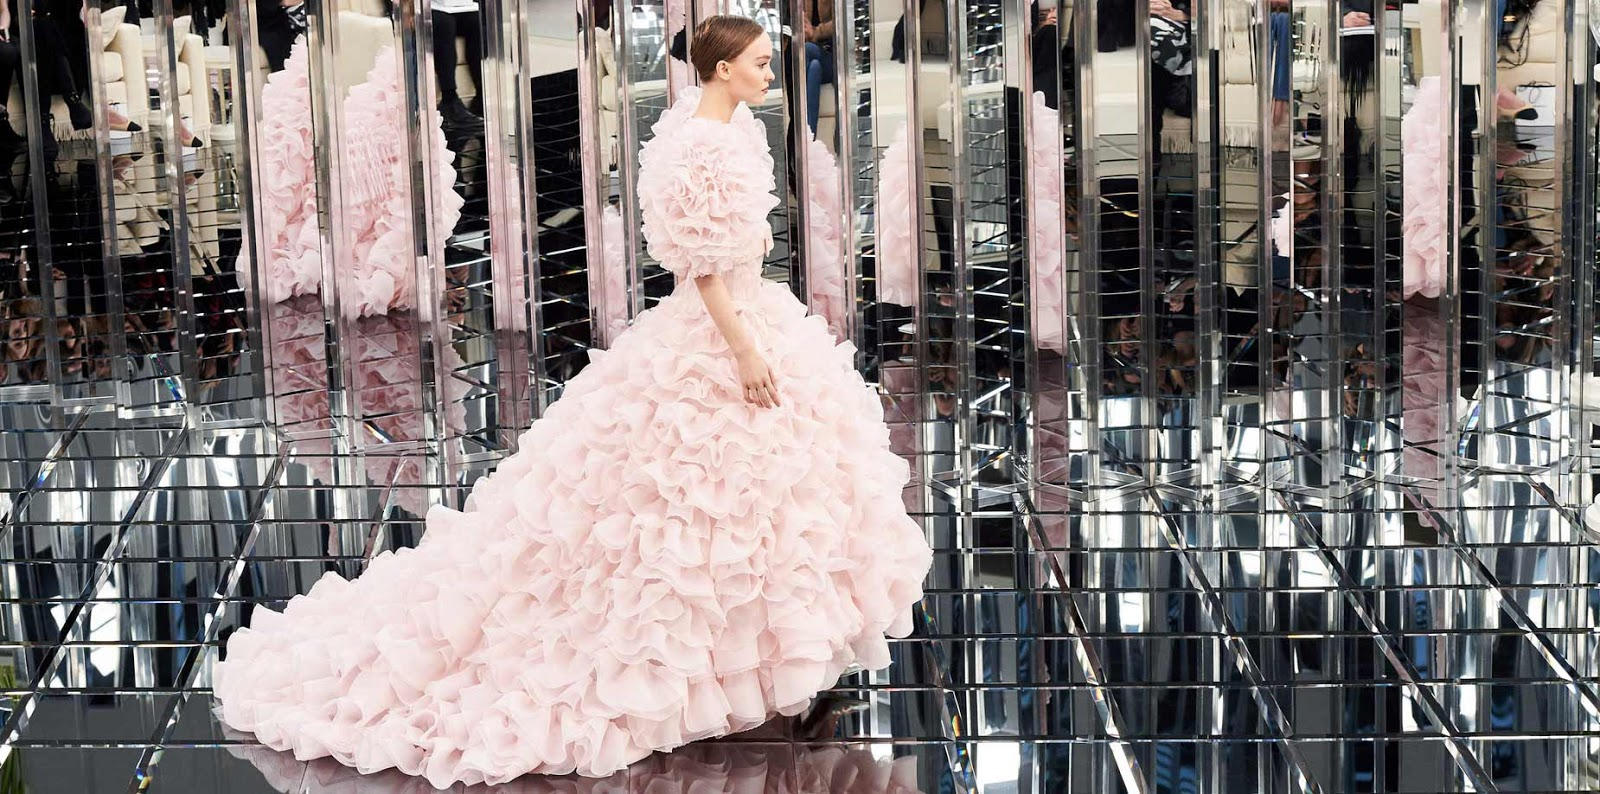 chanel-haute-couture-ss17-spring-summer-2017-model-pink-gown